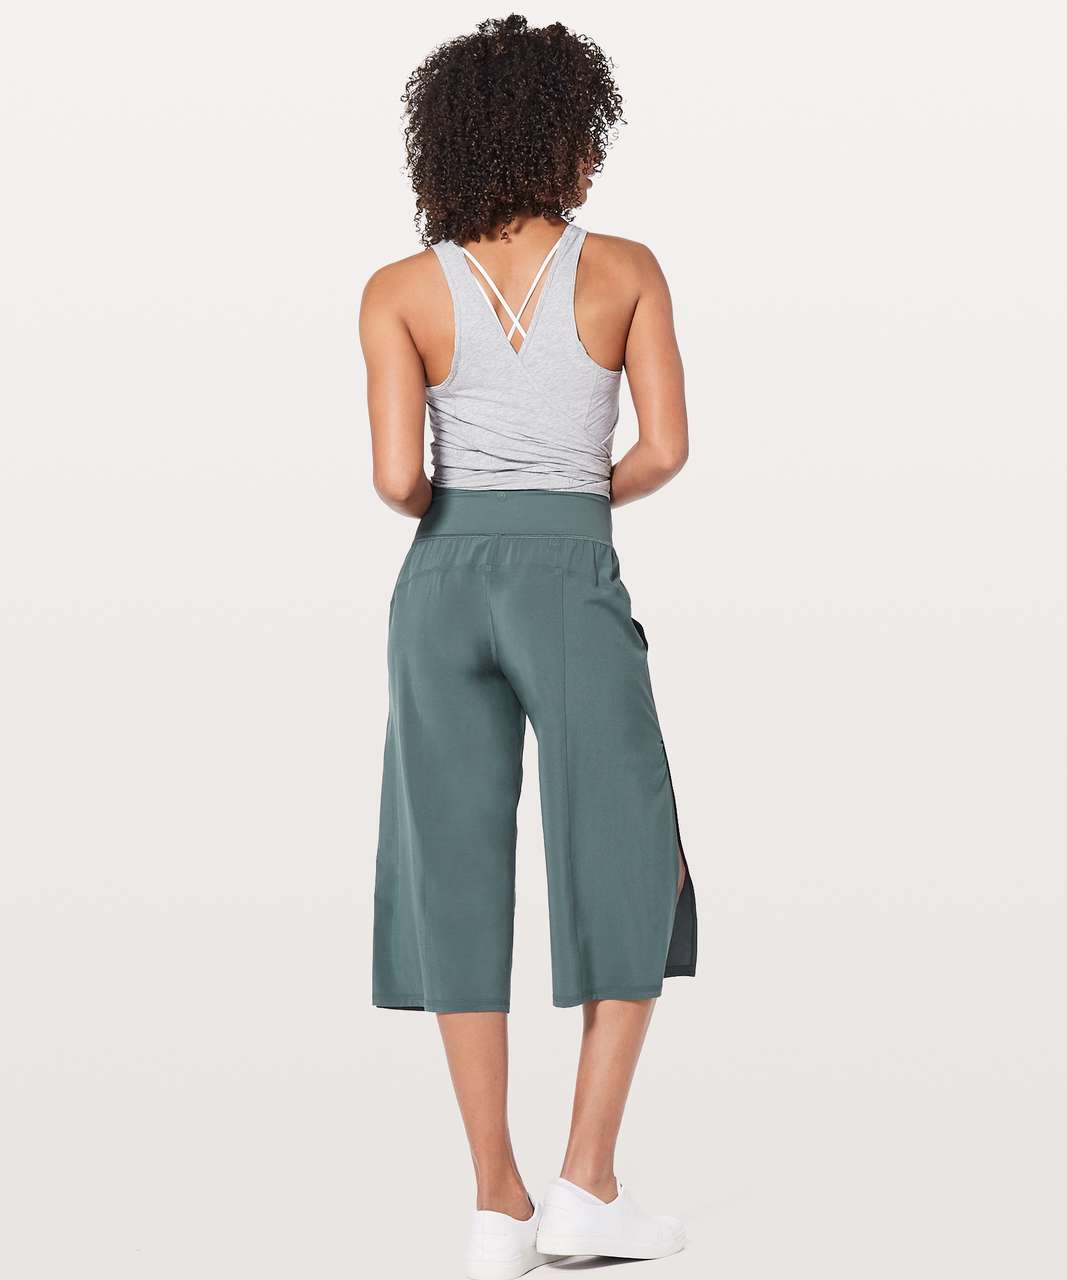 Lululemon Serene Crop - Sea Steel